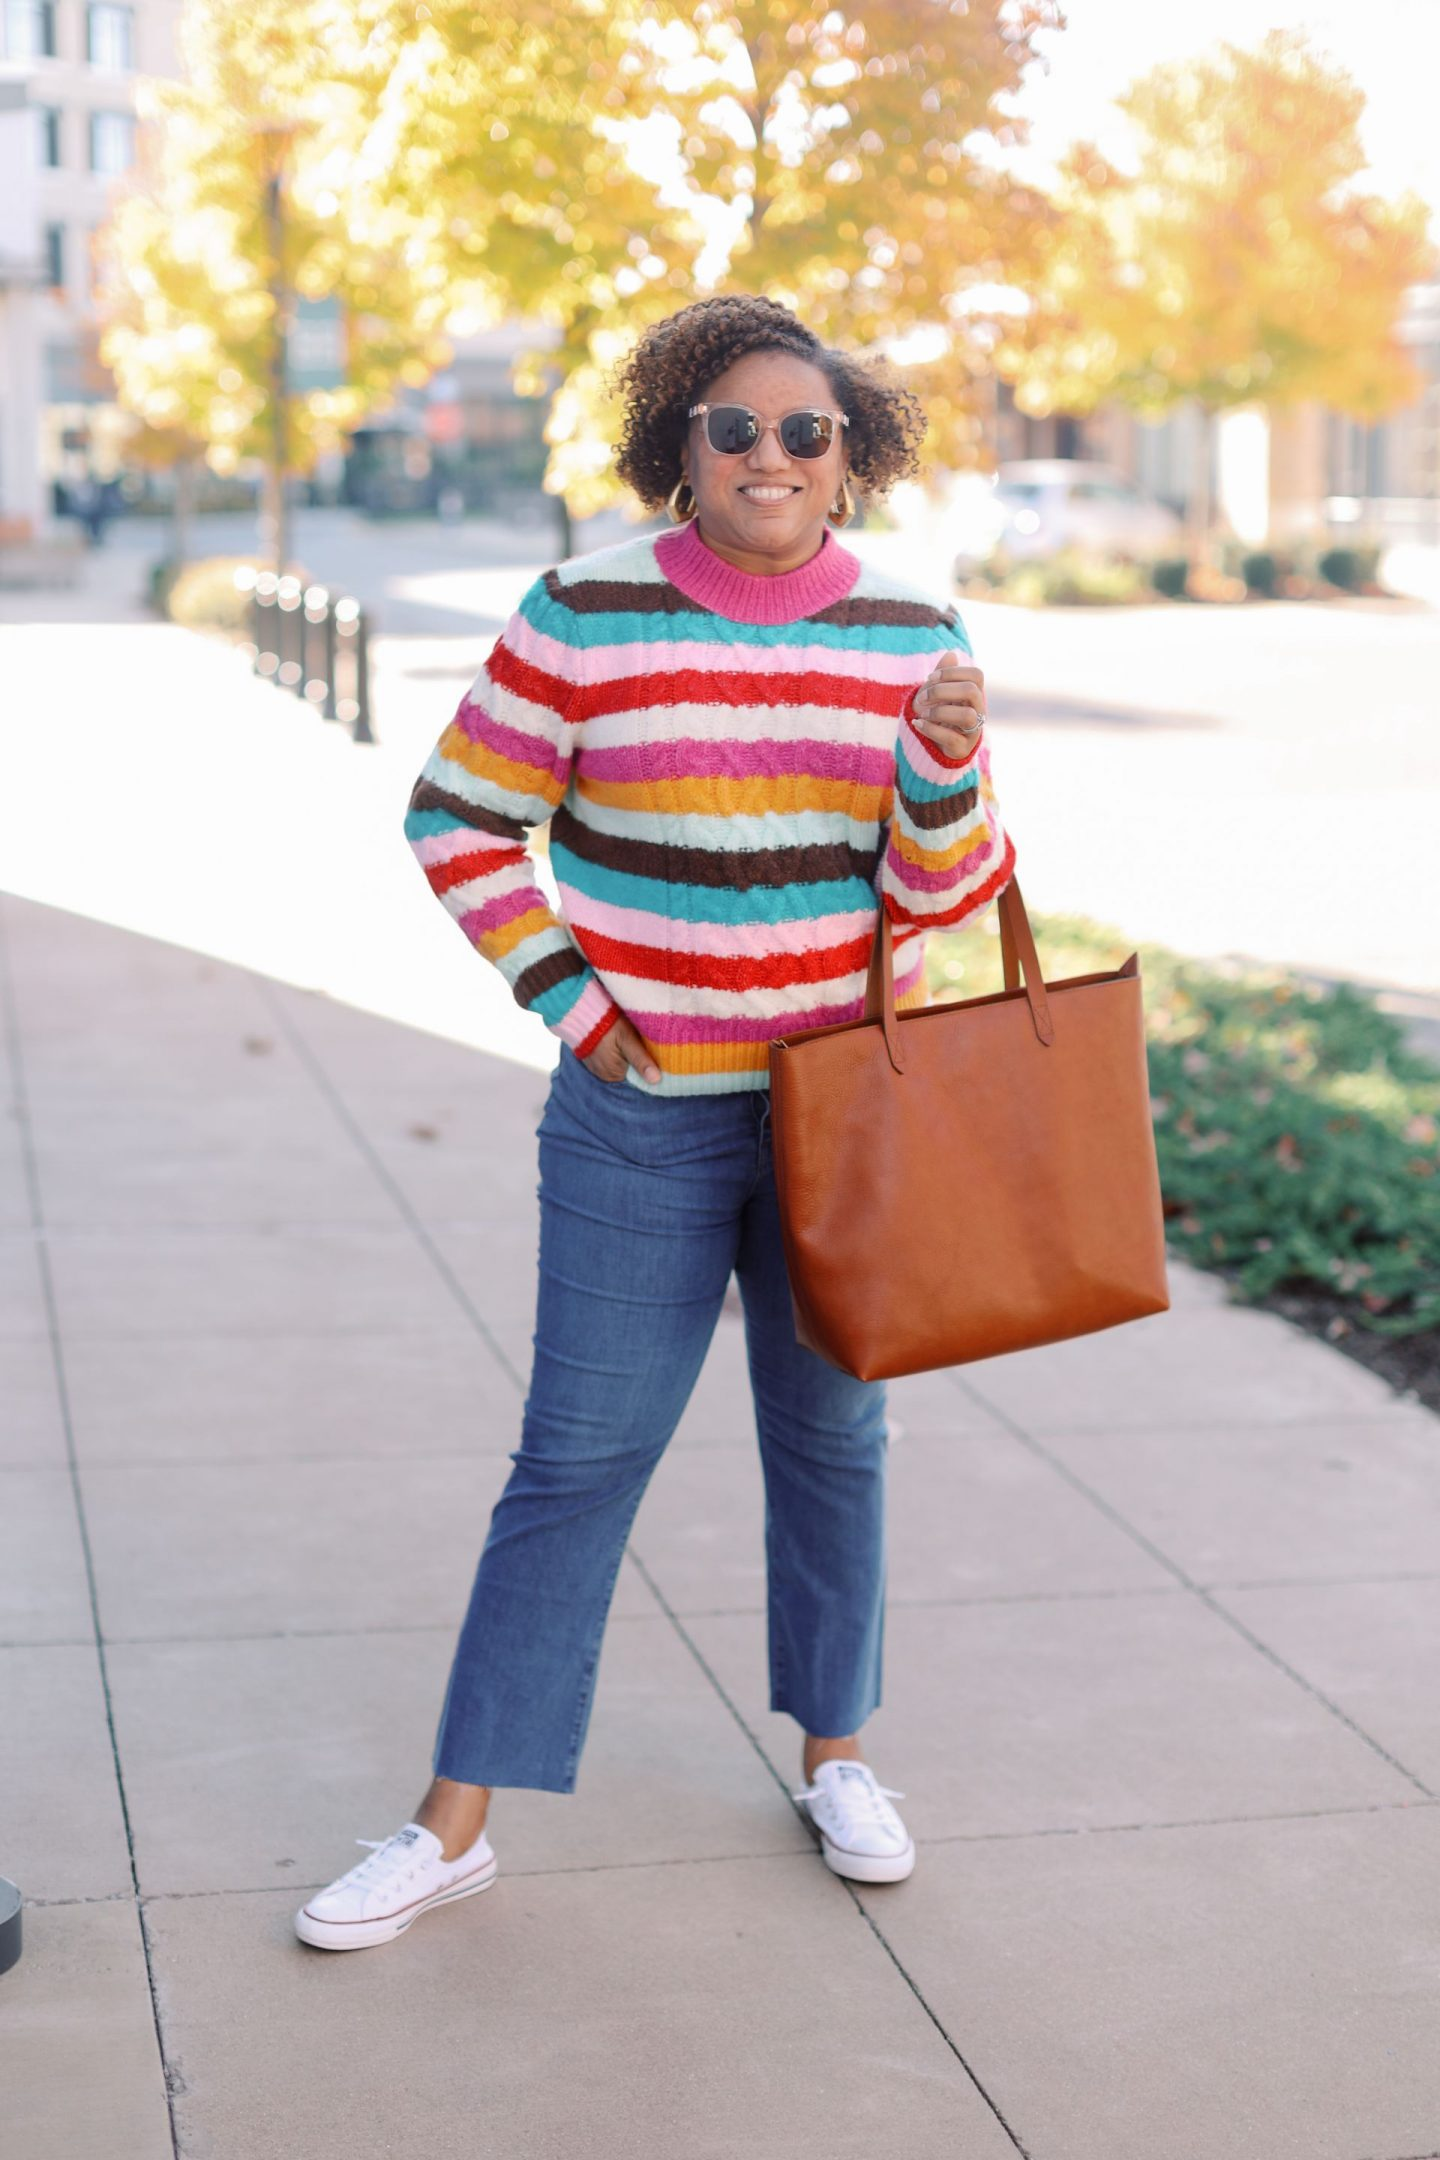 Pink Clothing by popular Kentucky fashion blog, Really Rynetta: image of a woman wearing a colorful stripe sweater, jeans, white converse sneakers, and holding a brown leather tote.